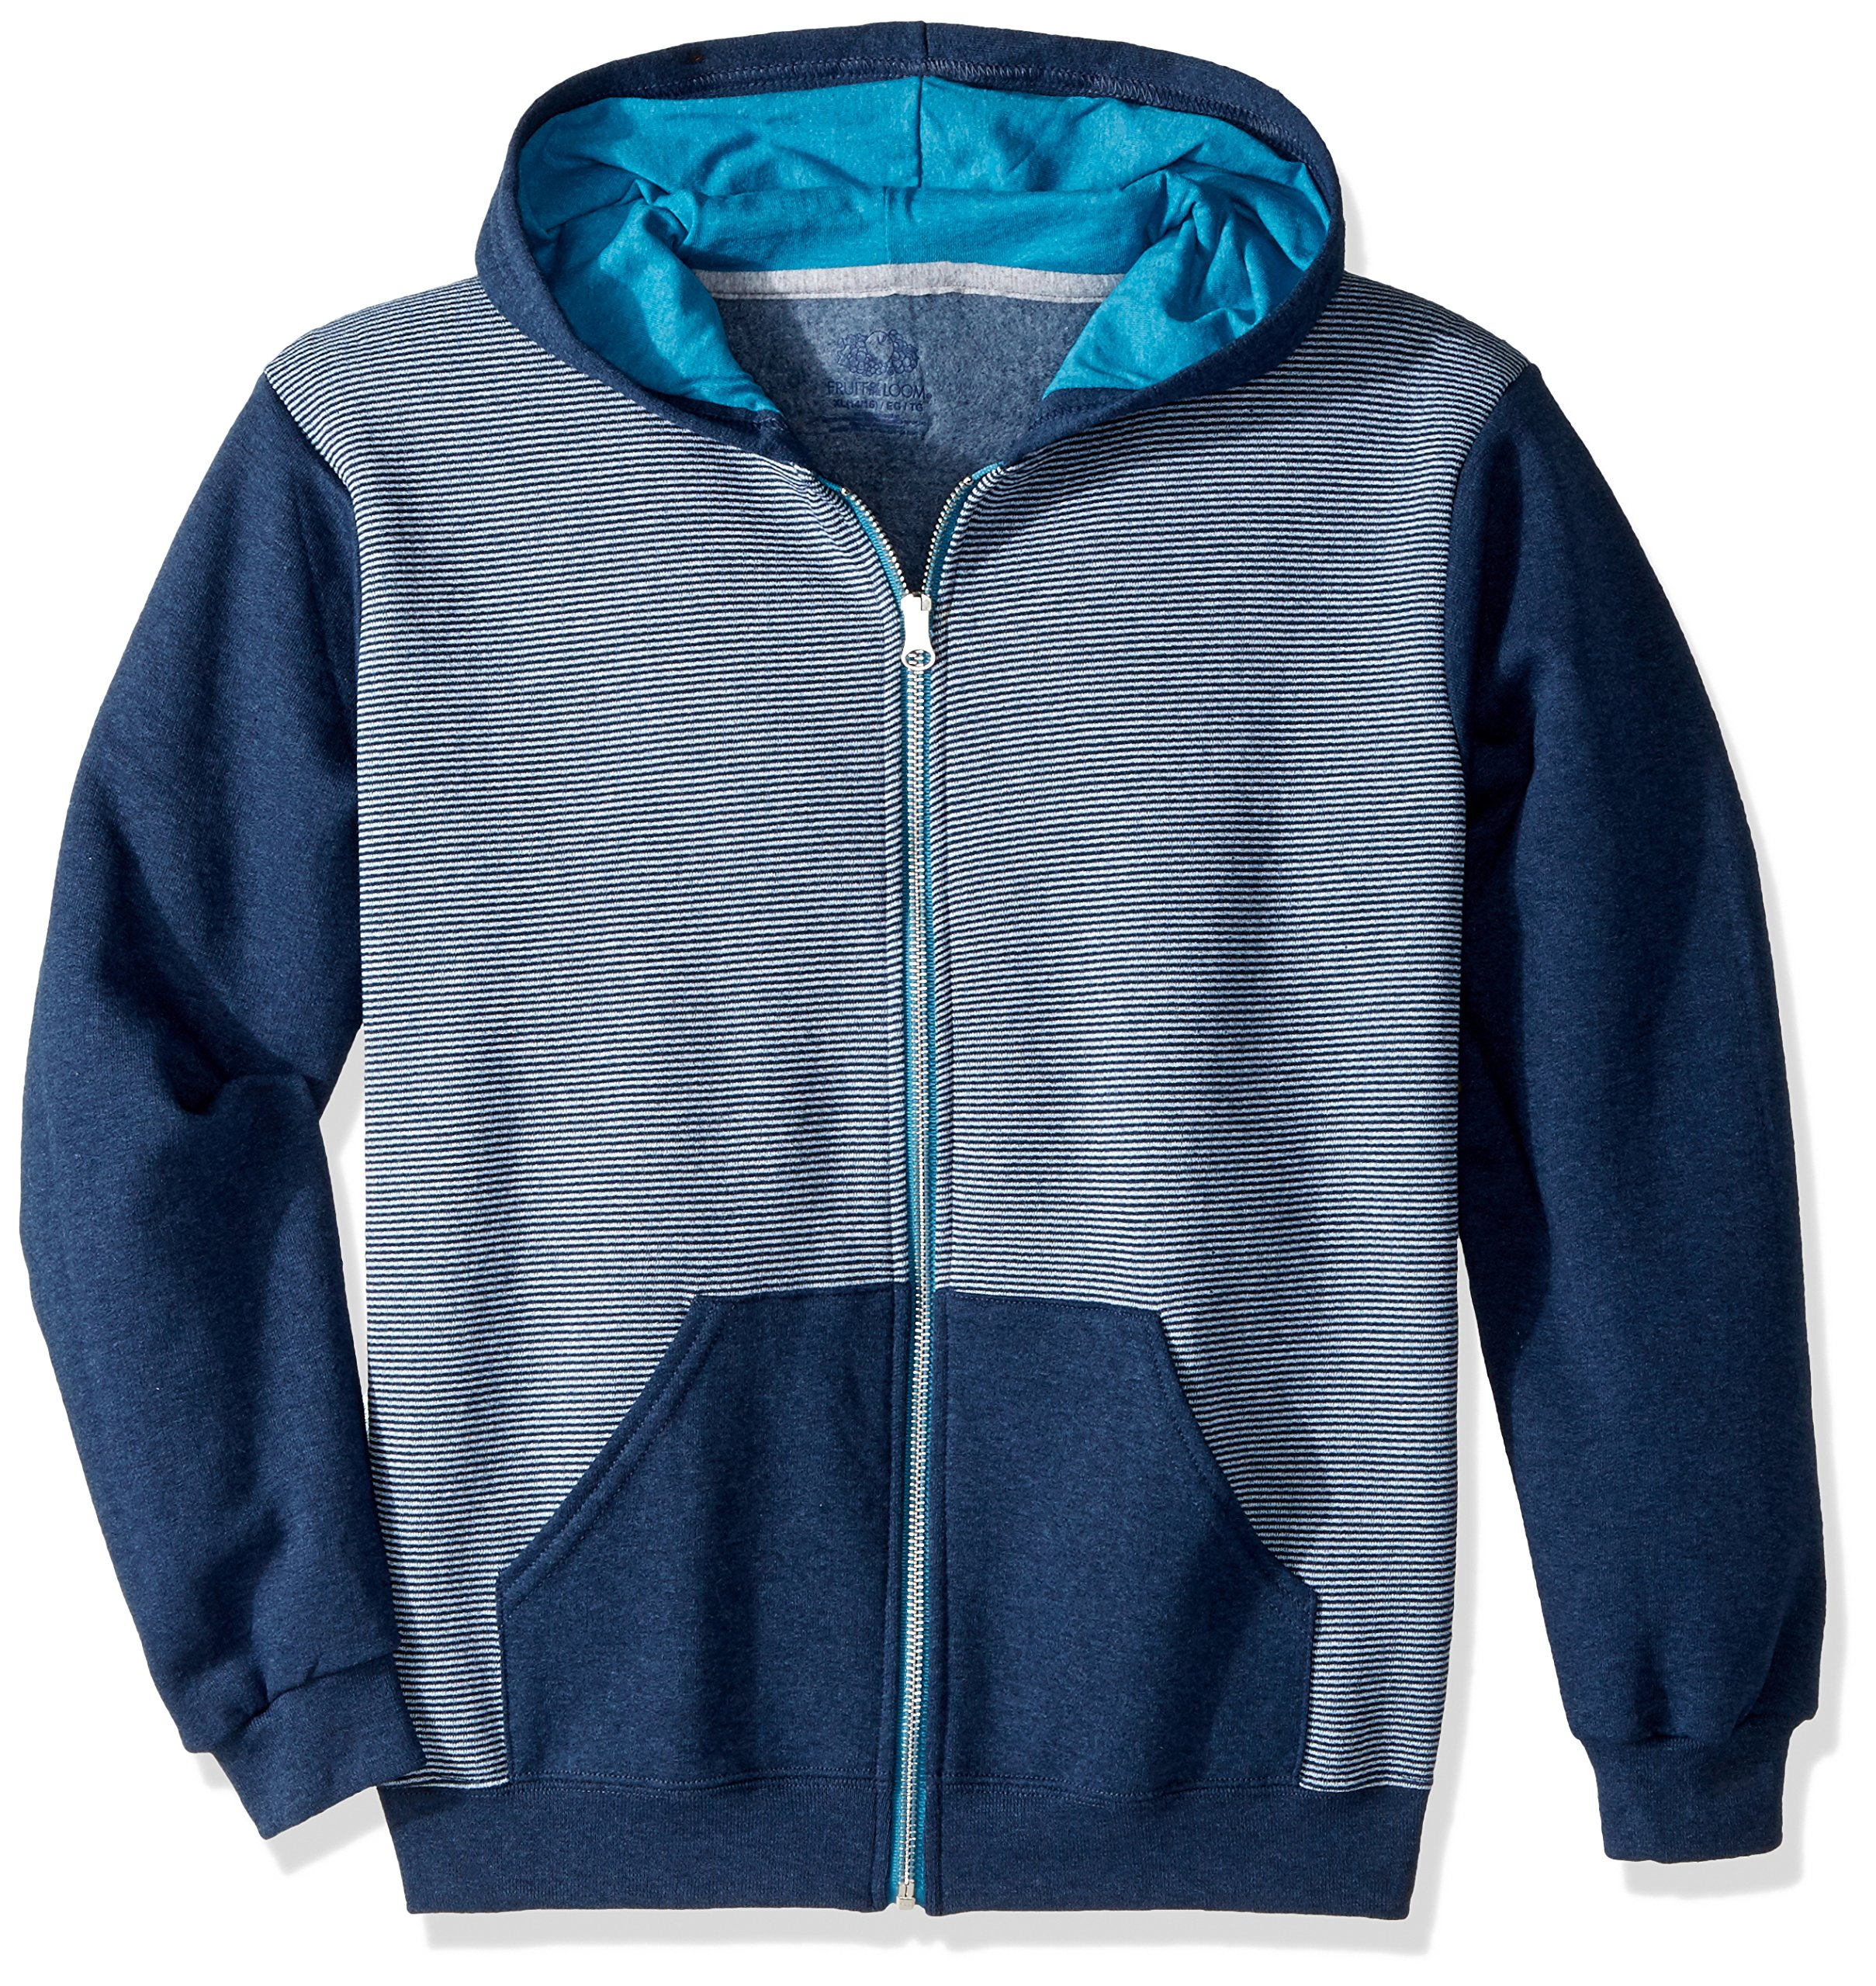 Fruit of the Loom Big Boys' Explorer Fleece Give Me S'More Warmth Hoodie, Smoke Blue Stripe/T.Blue Heather/Amulet Teal Heather, Large